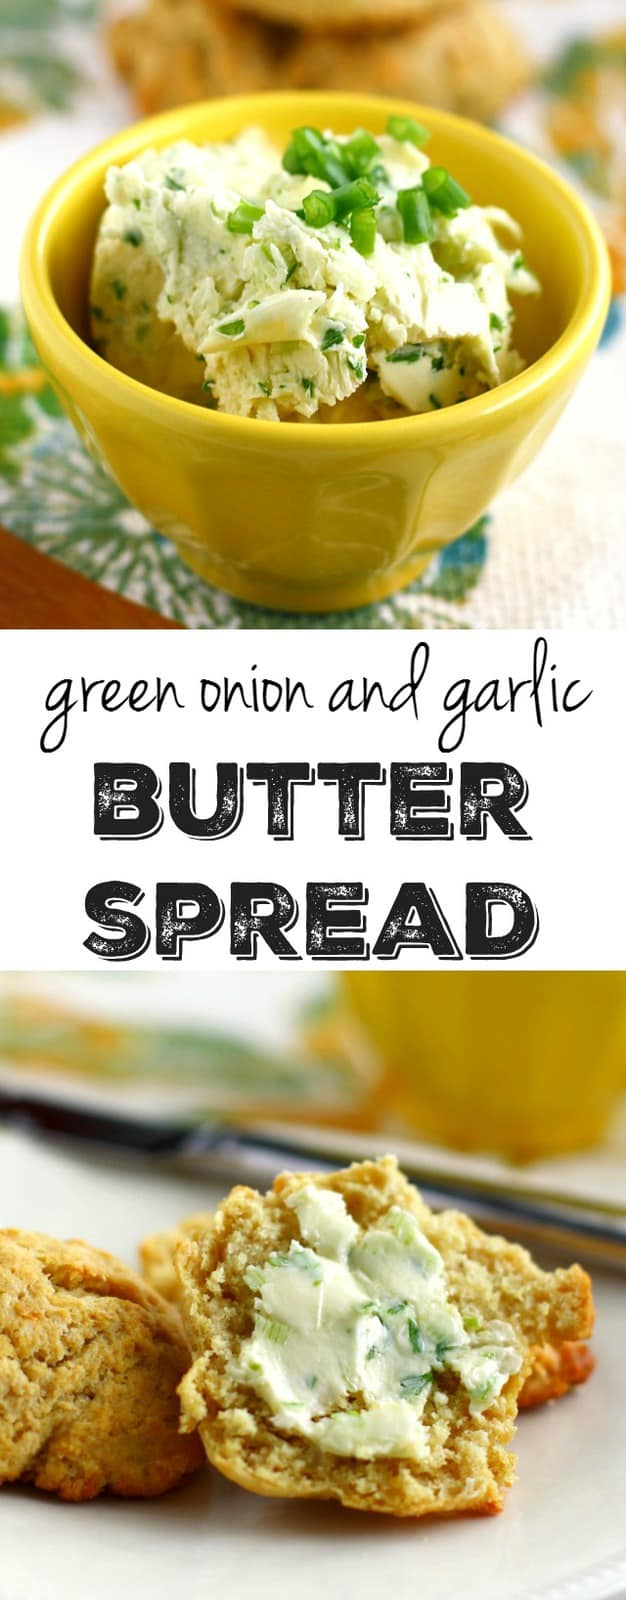 A flavored butter spread made with green onions and garlic. Easy to make!